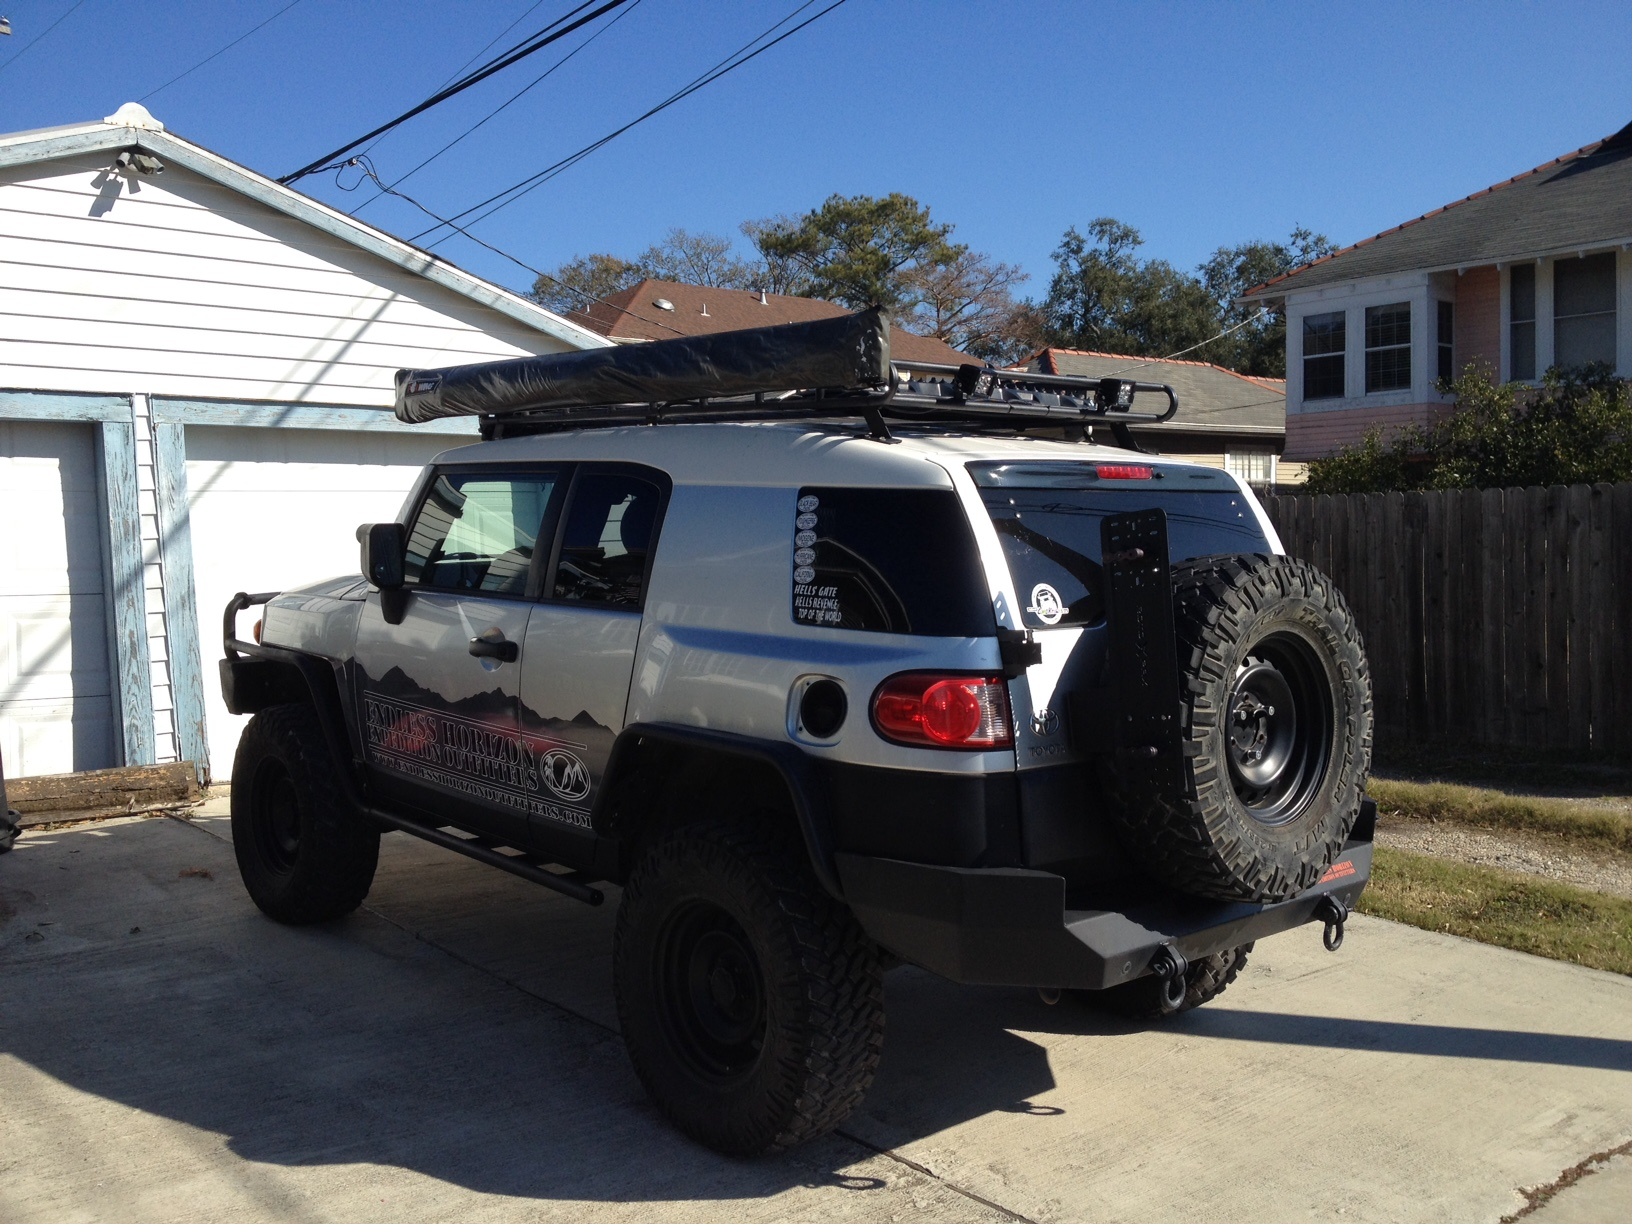 Show me your awnings - Page 7 - Toyota FJ Cruiser Forum